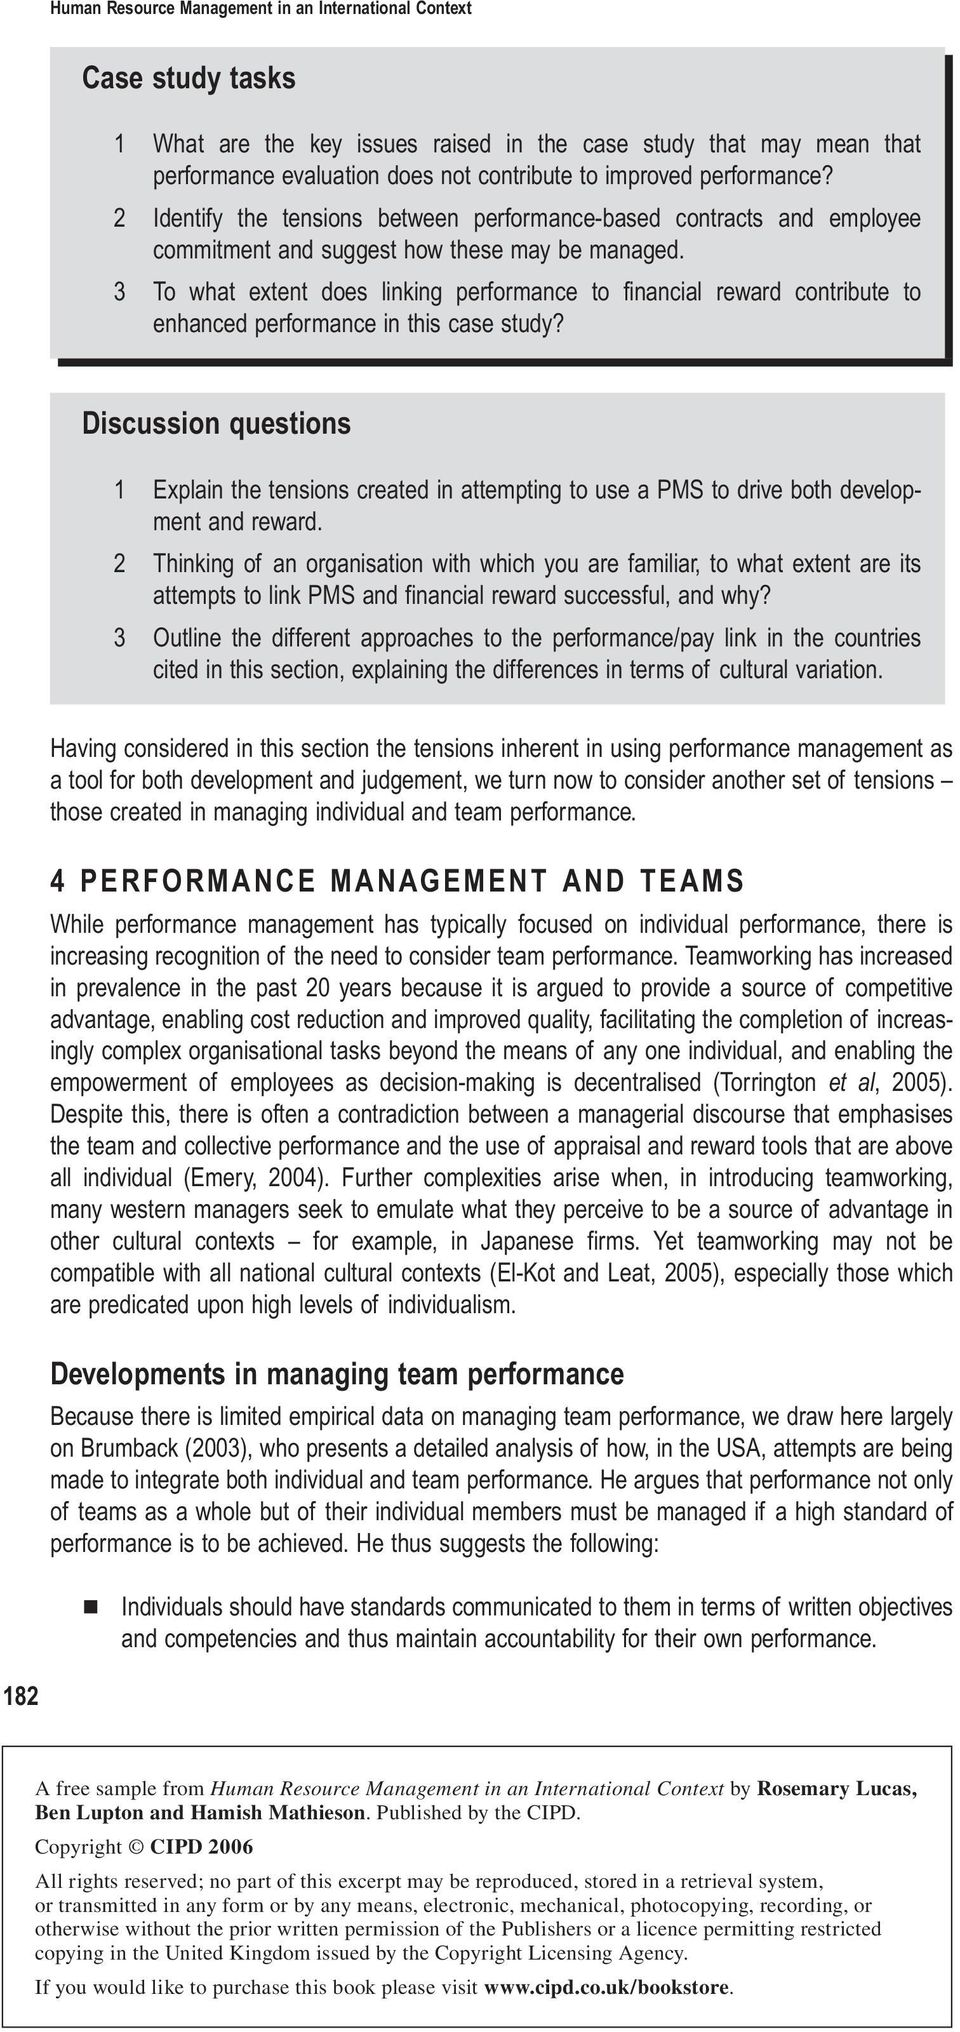 3 To what extent does linking performance to financial reward contribute to enhanced performance in this case study?